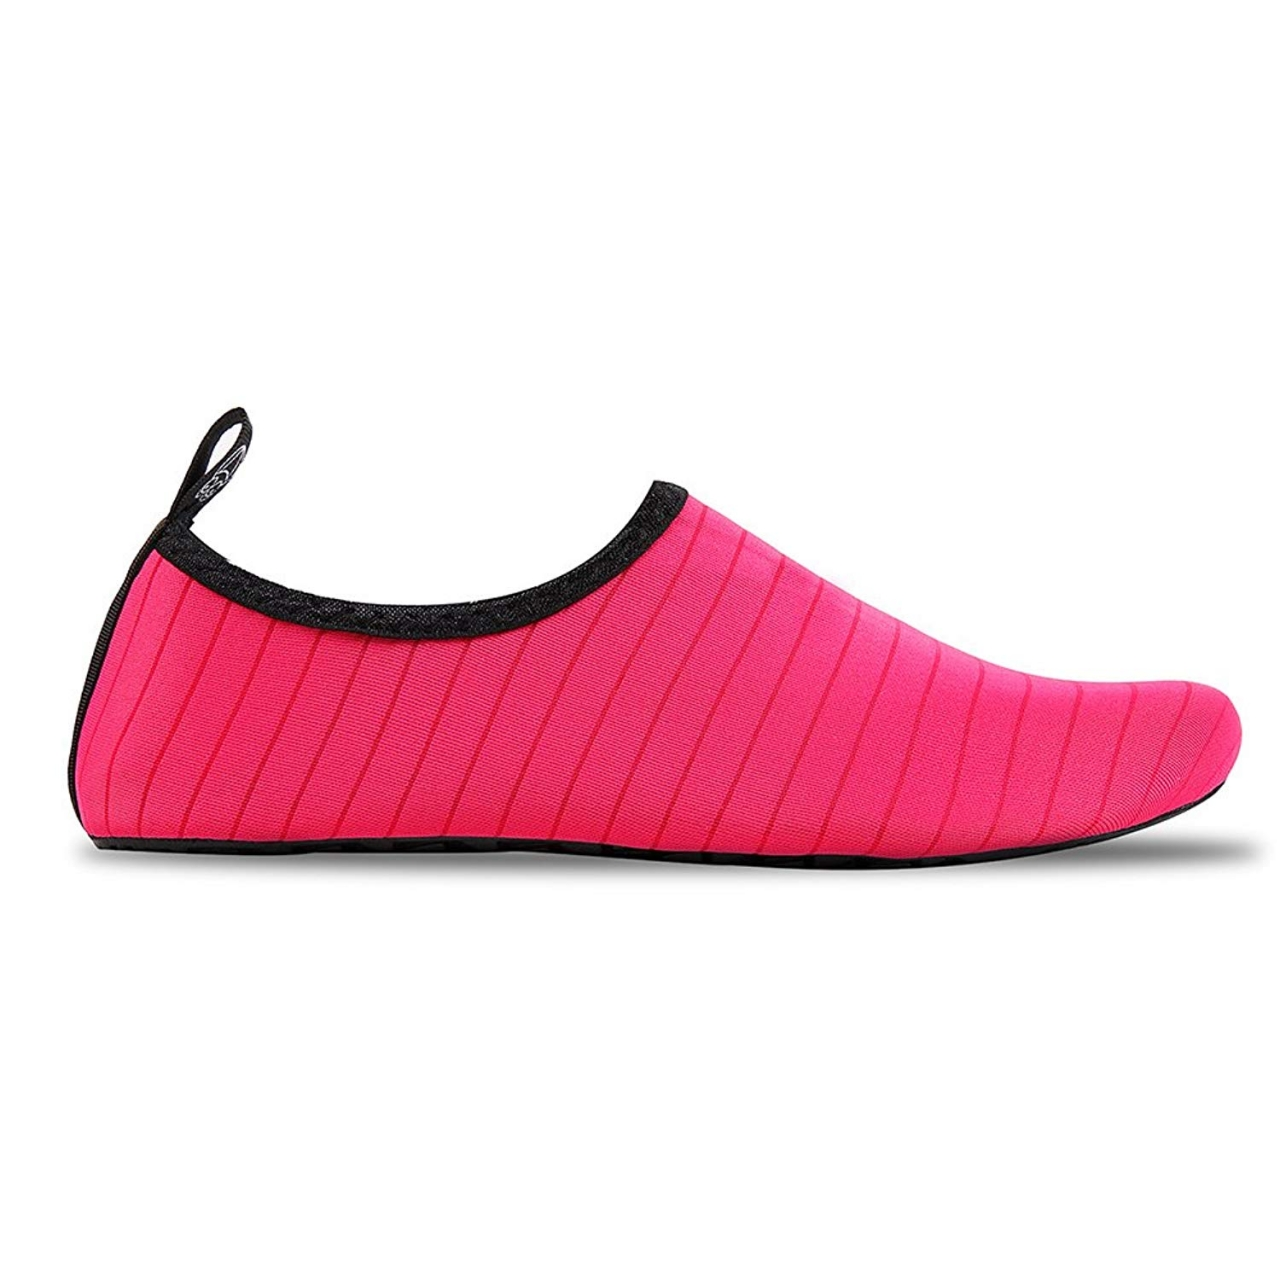 ad68c08a99d1 Water Shoes Barefoot Quick-Dry Aqua Socks for Beach Swim Surf Yoga Exercise  for Women and Men tw.rose red 44/45